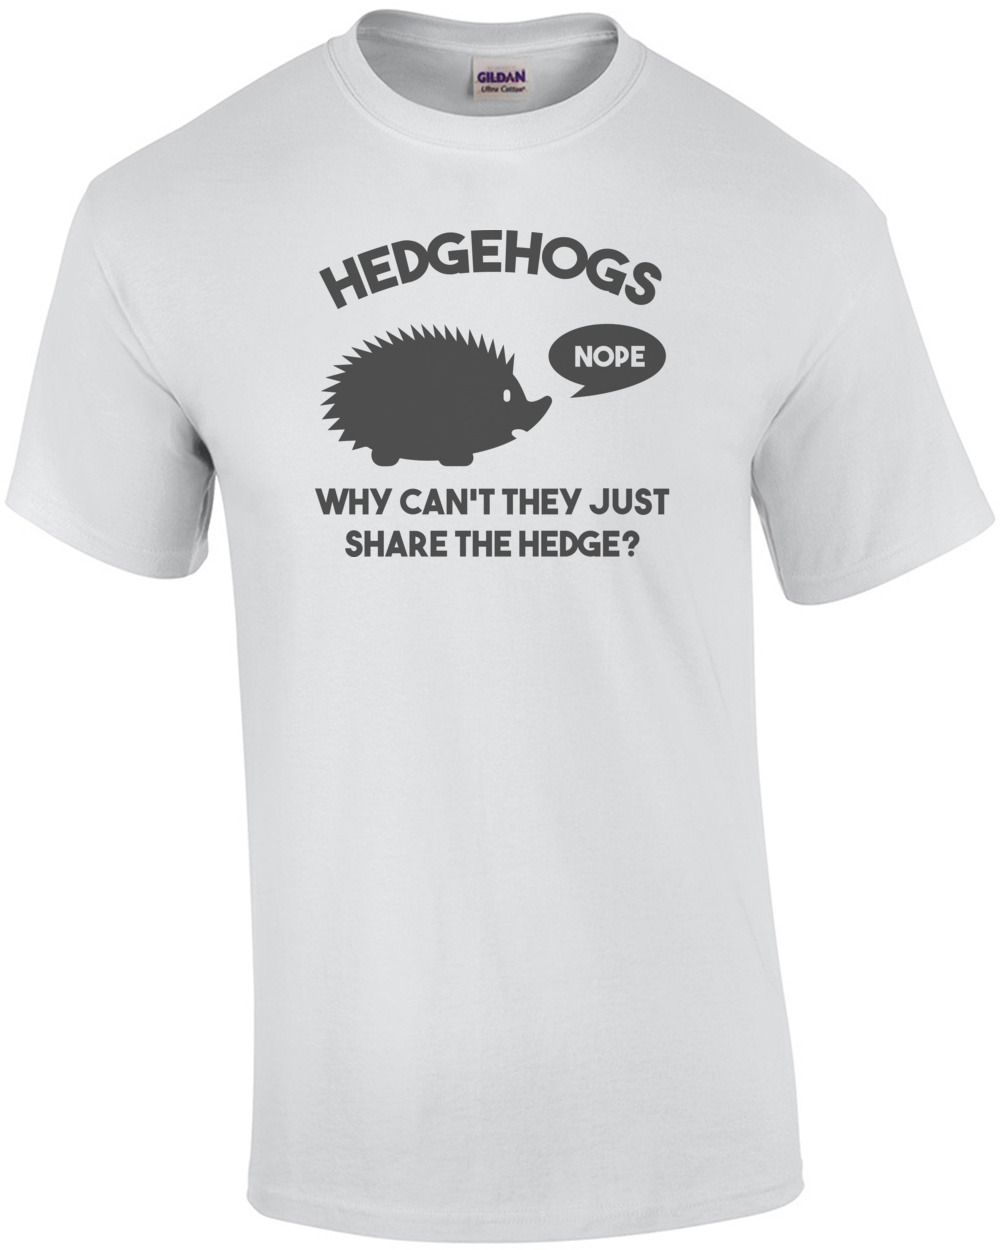 6ed33fe55 Hedgehogs - why can't they just share the hedge? T-Shirt shirt